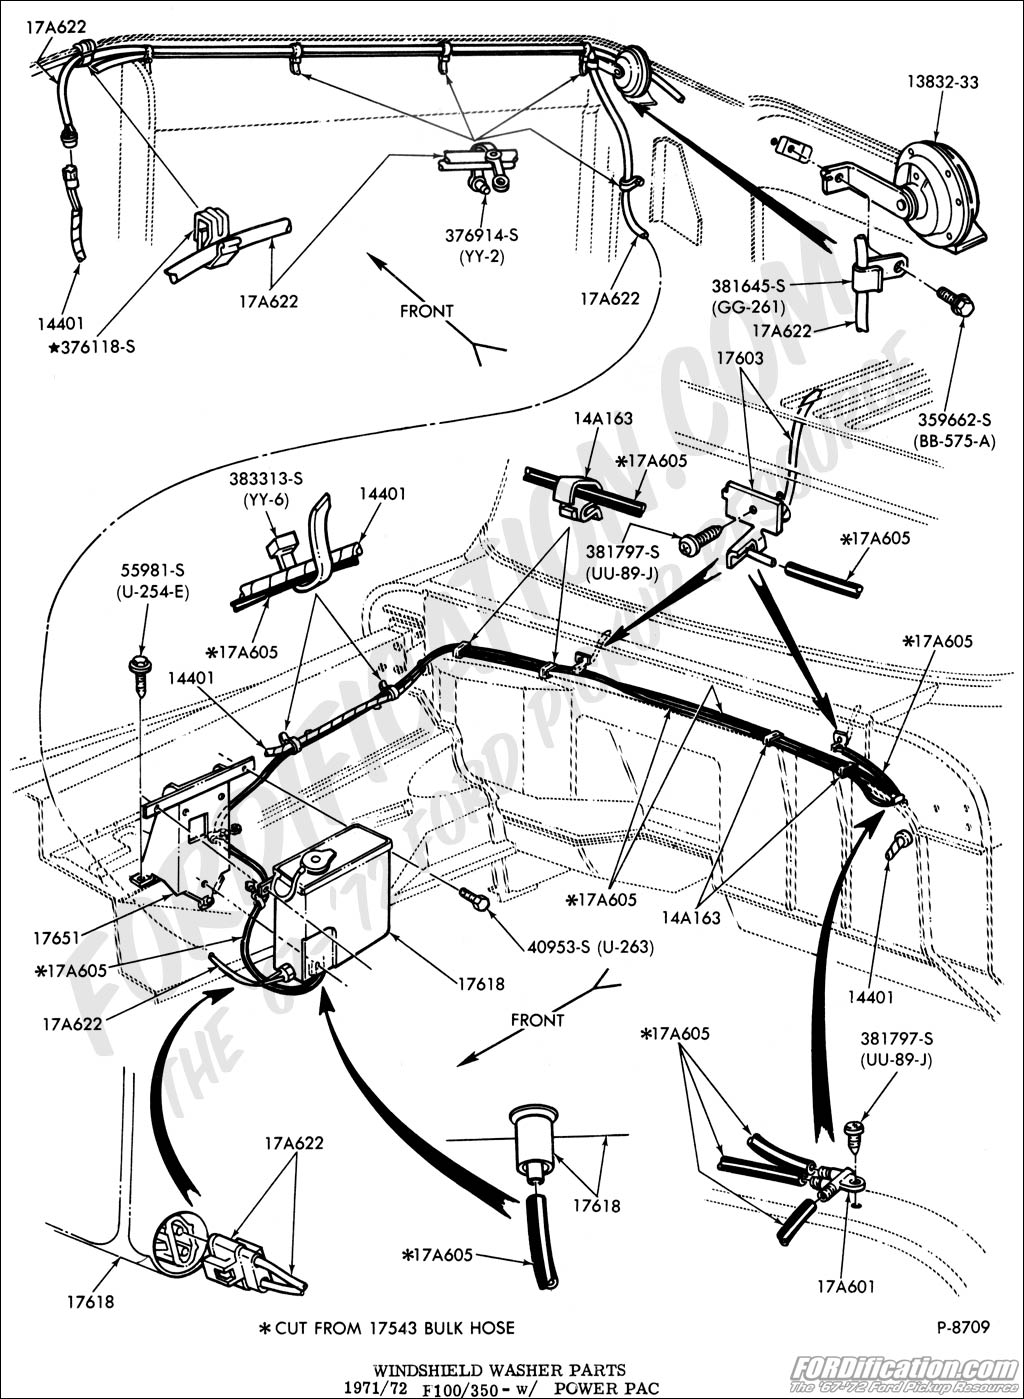 Ford Truck Technical Drawings And Schematics Section I Instrument Panel Cluster 2003 Chevy S10 Wiring Diagram Electrical